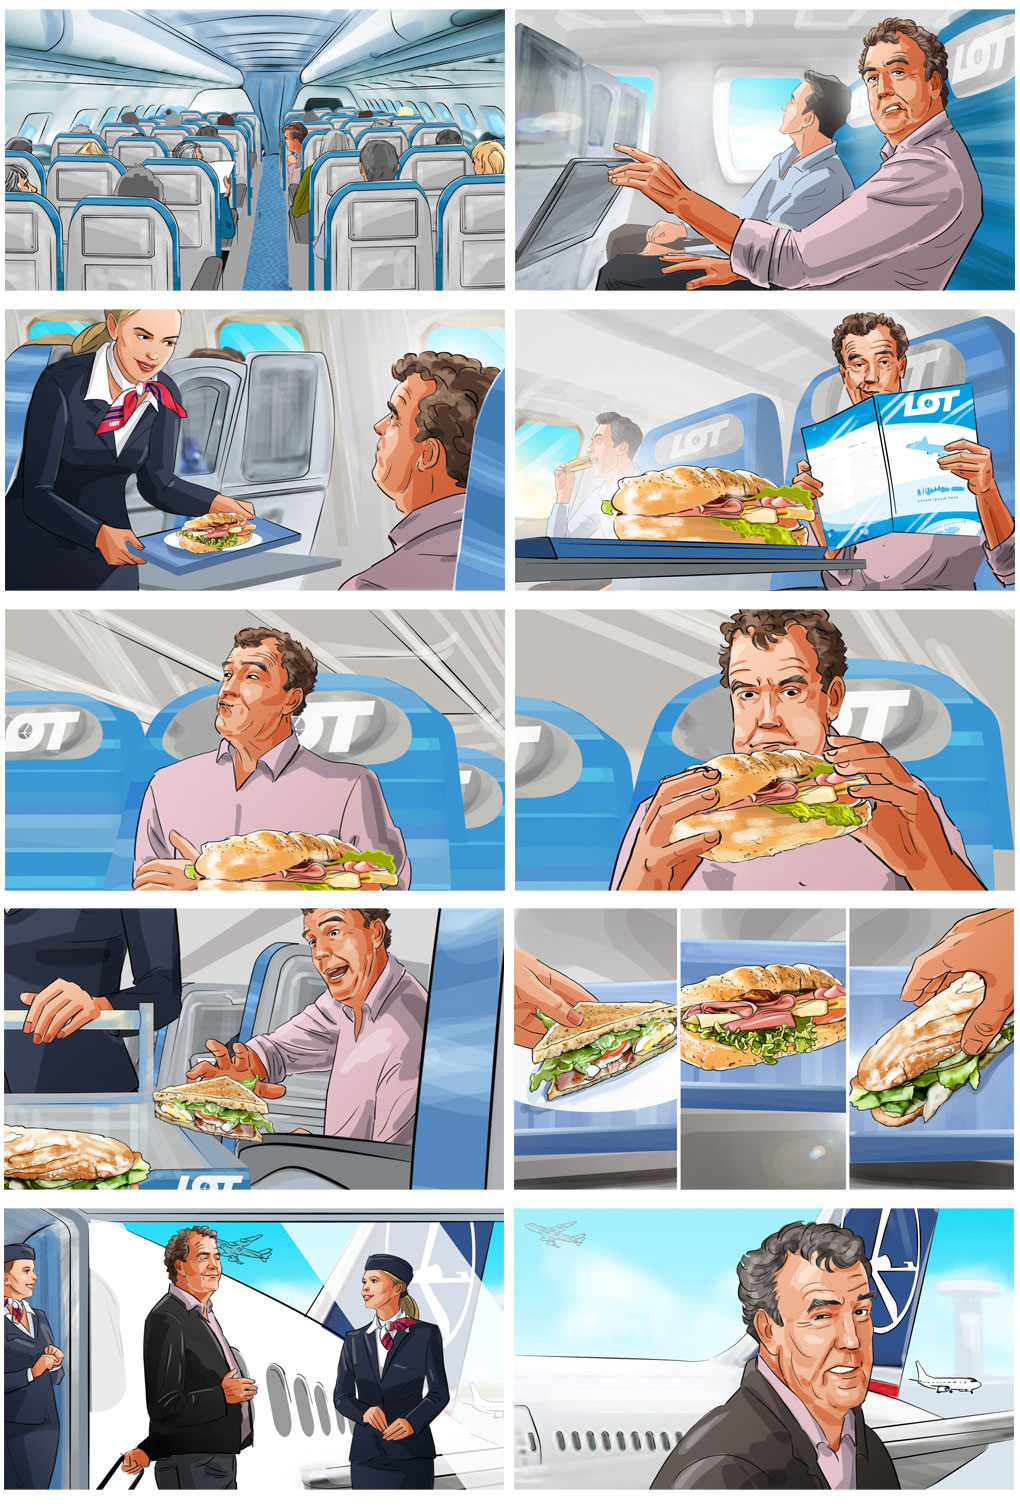 clarkson airplane sandwiches illustration storyboard